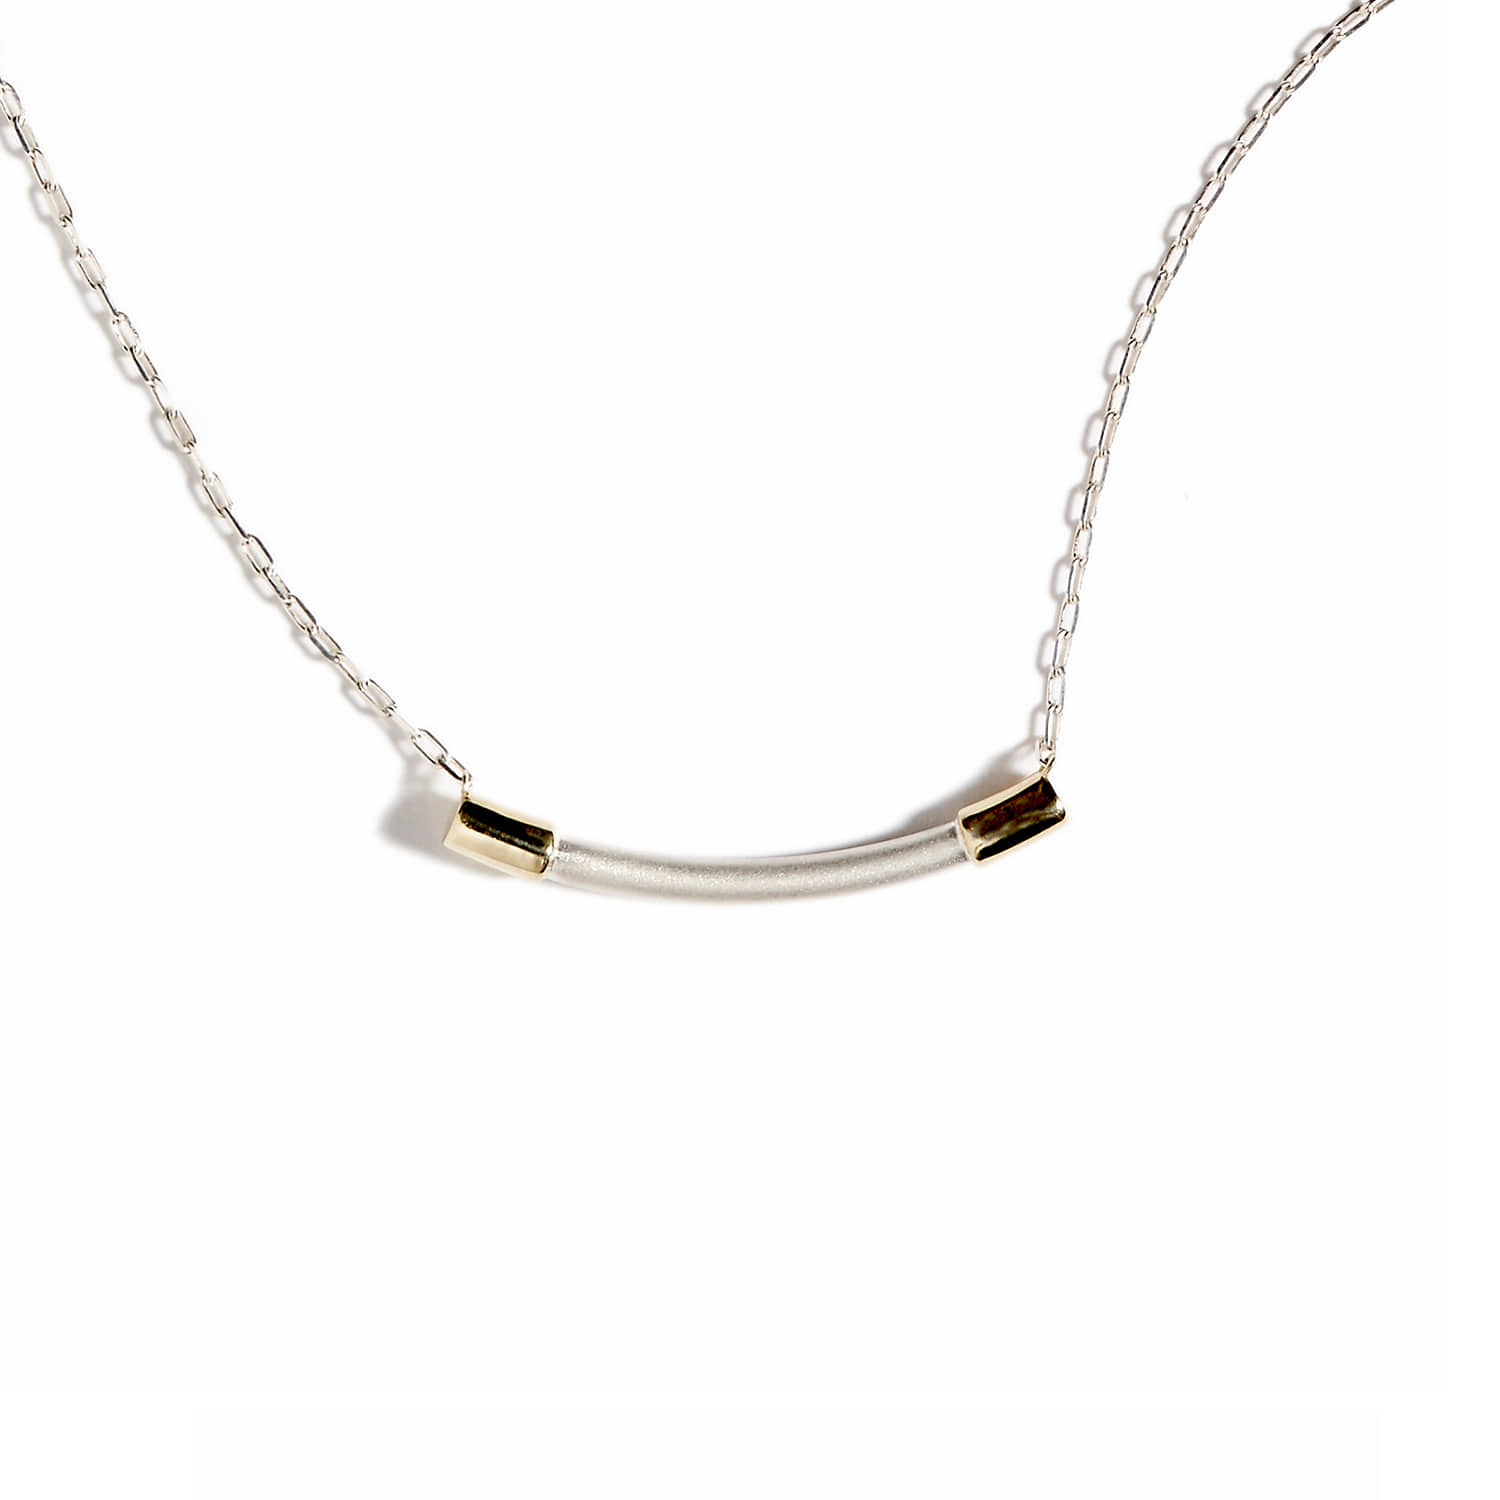 NS_Silver chain necklace